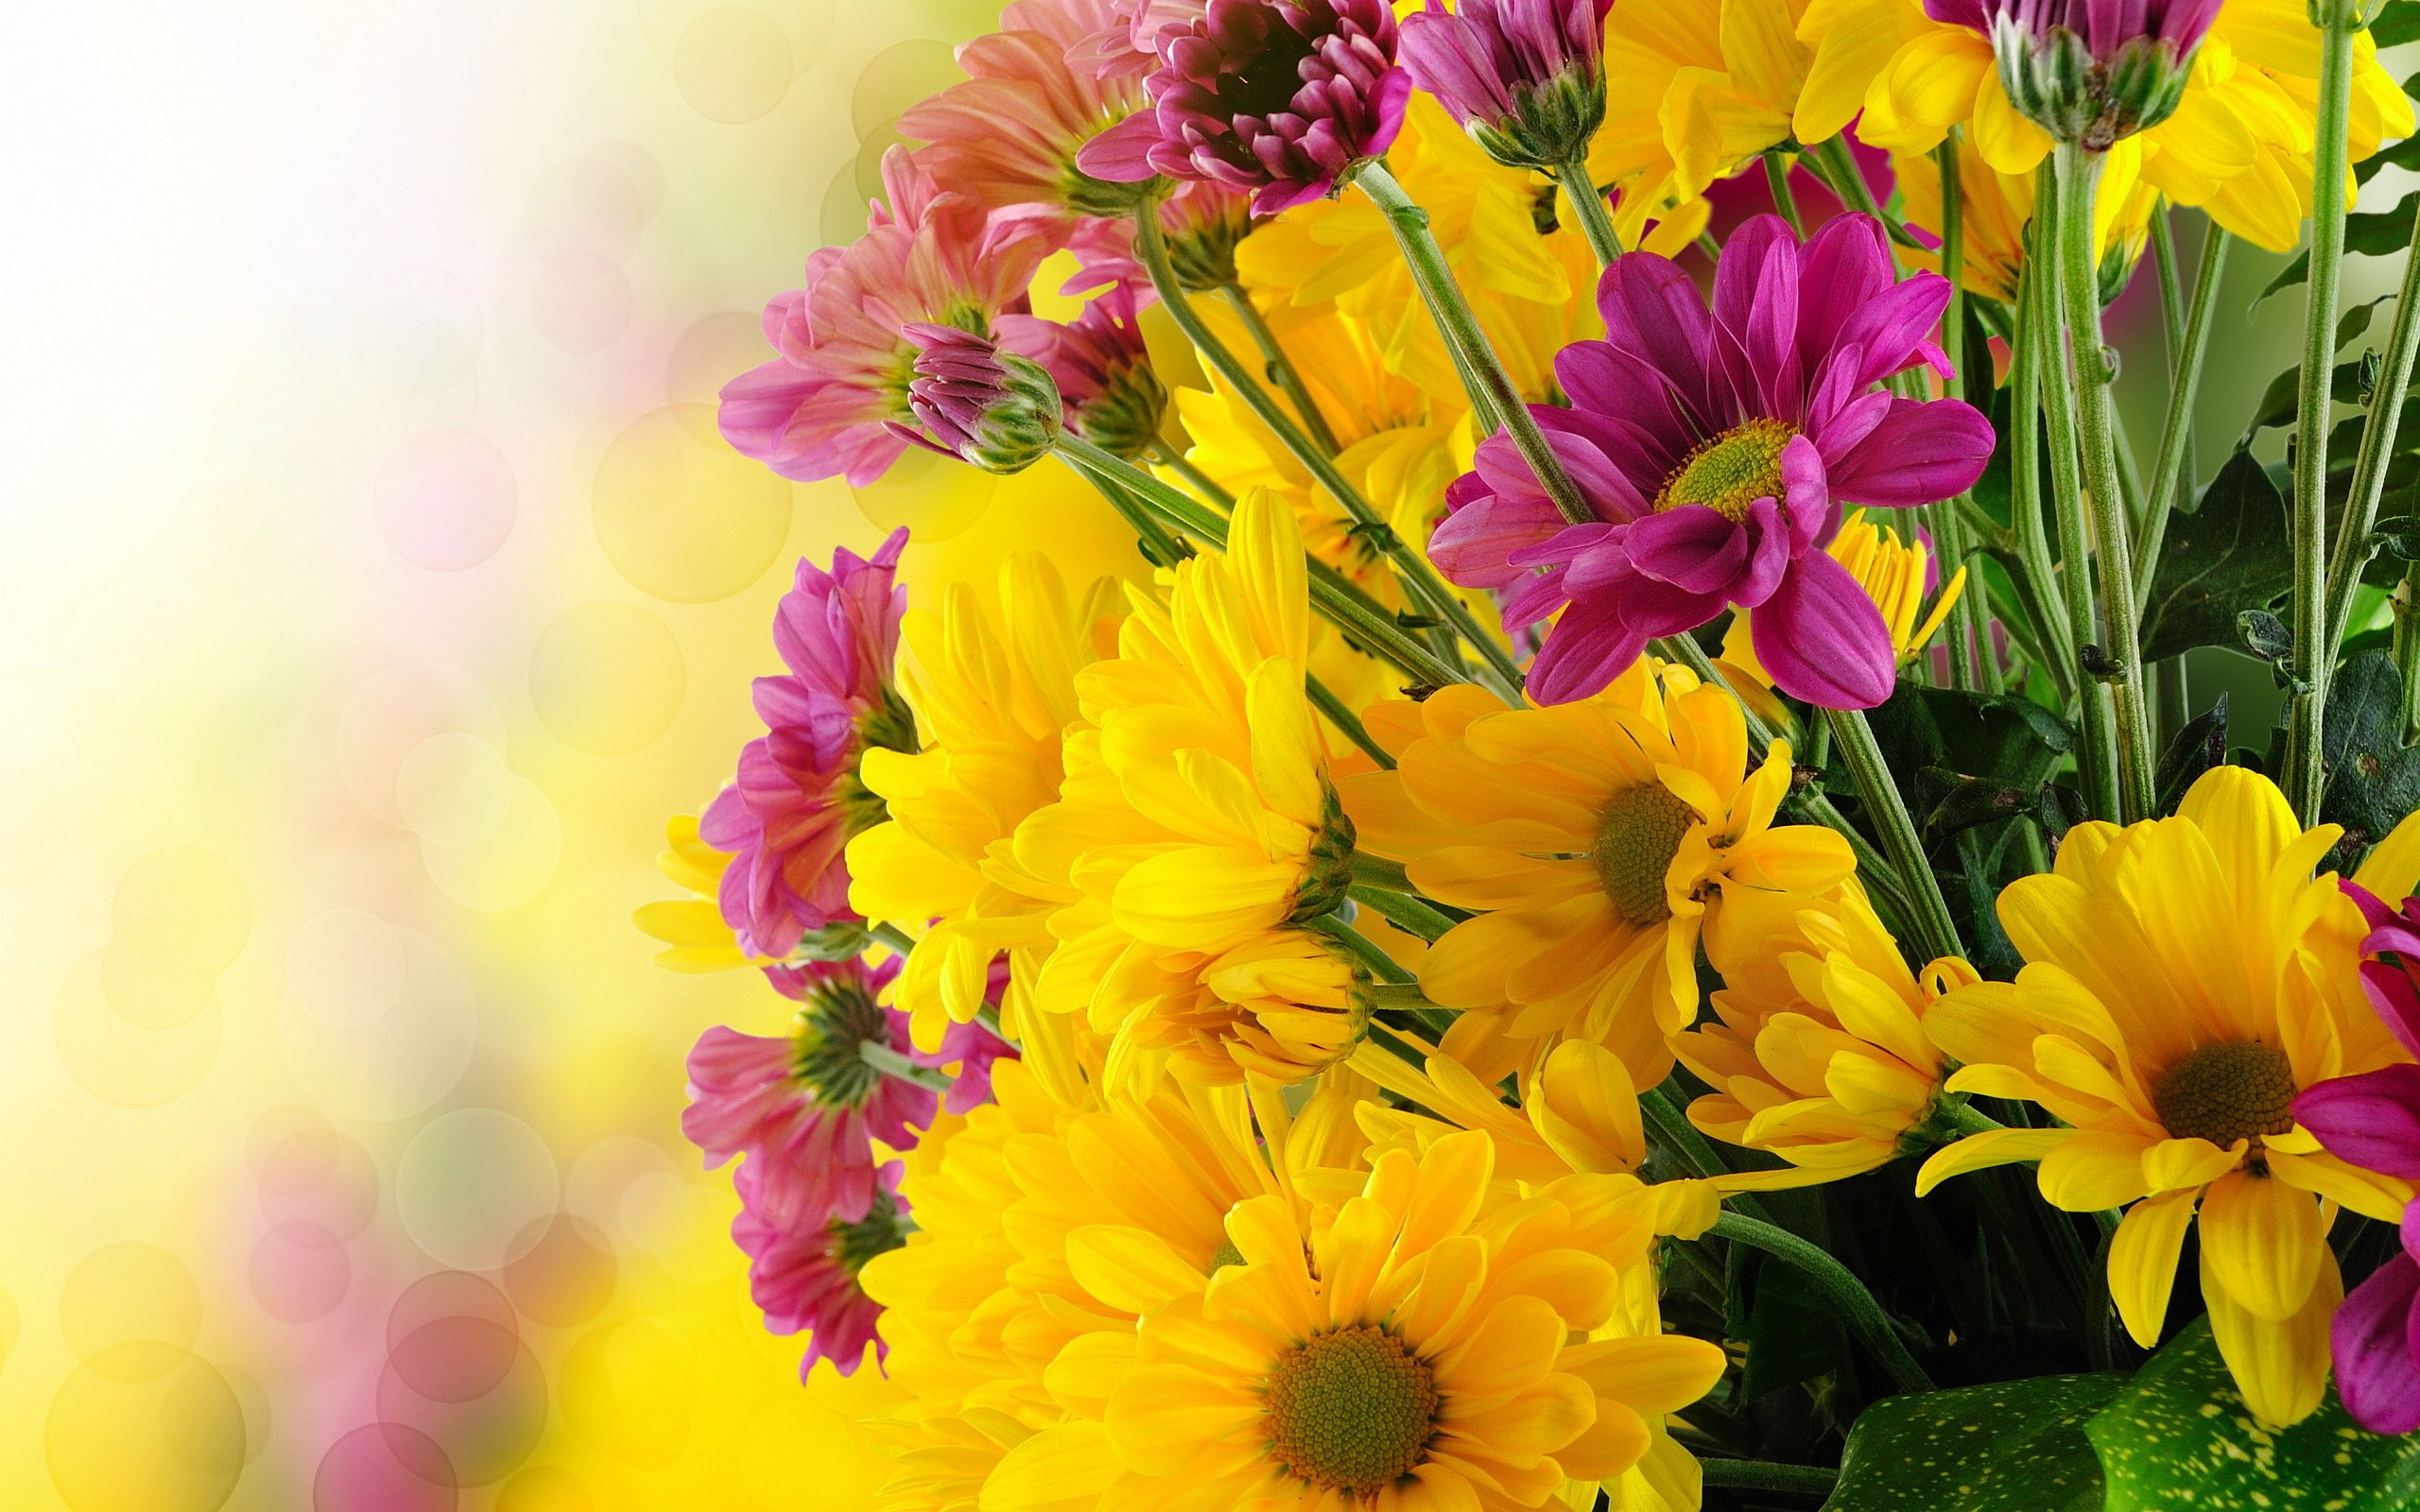 BUNCH PINK YELLOW FLOWERS – Online Wallpapers HD